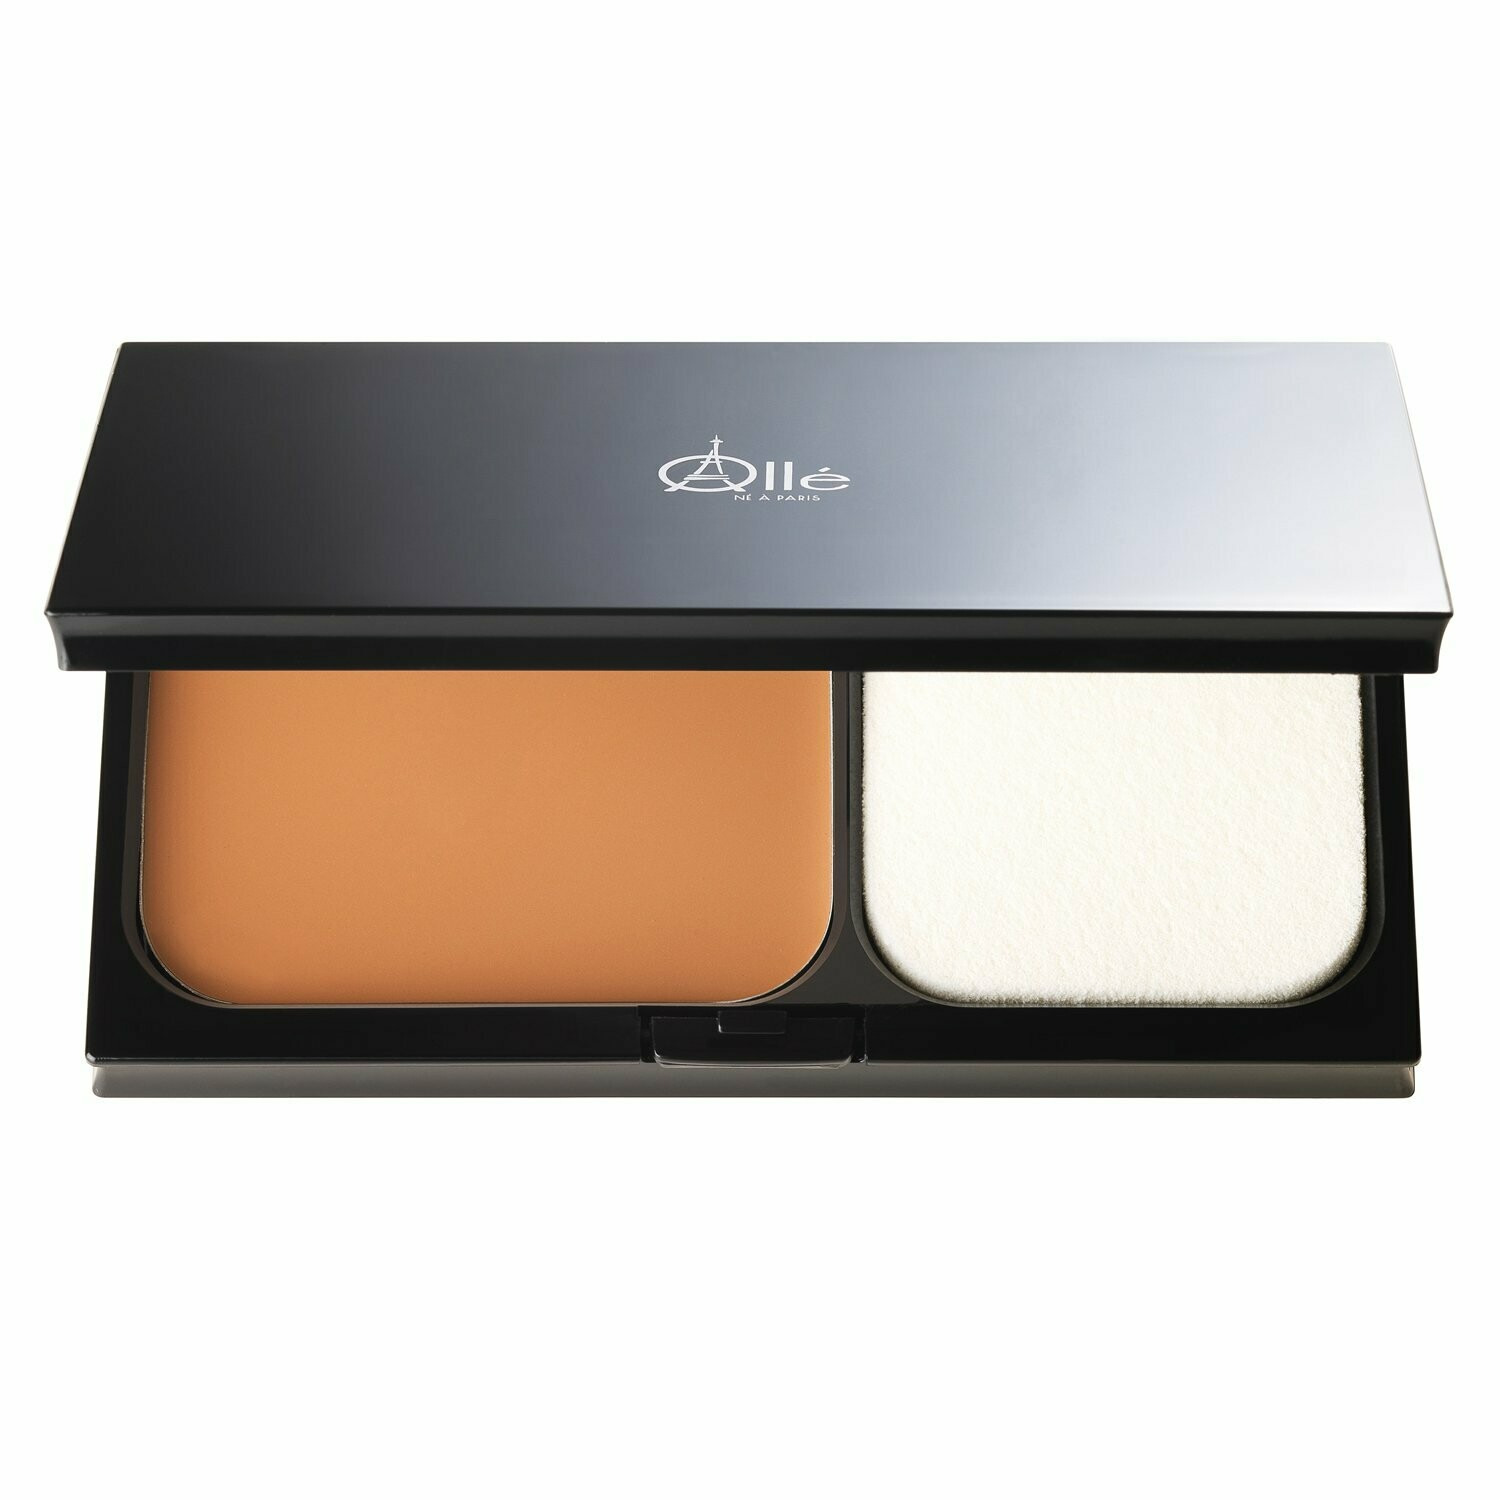 MAQUILLAGE COMPACT DOUBLE EFFET 014